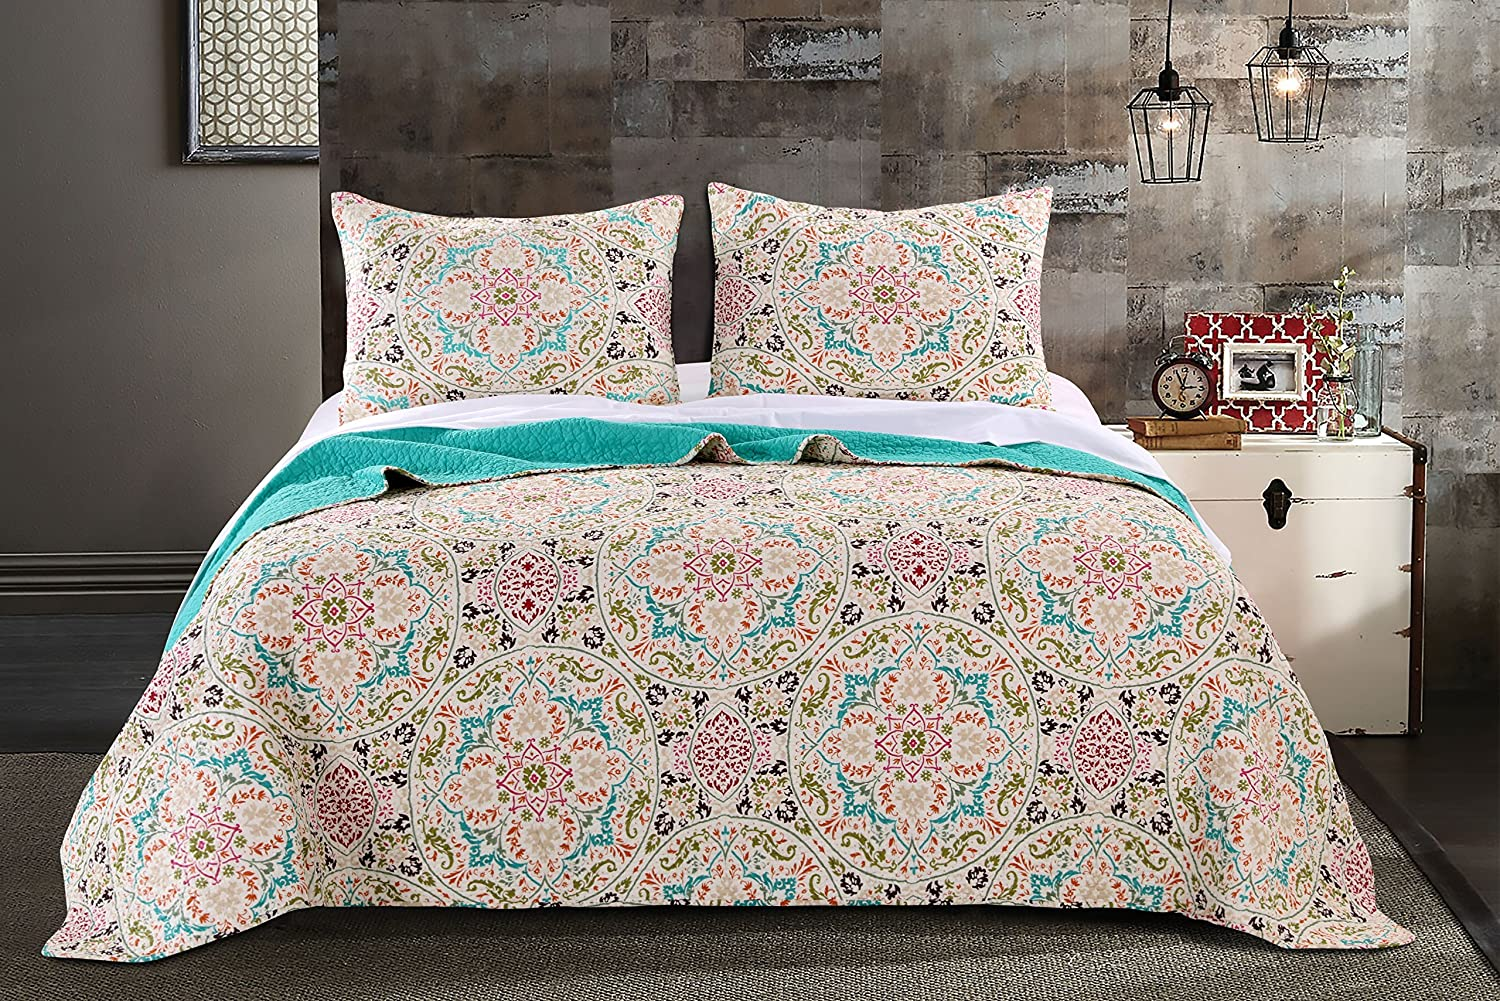 Greenland Home 3 Piece Morocco Gem Quilt Set, Full/Queen